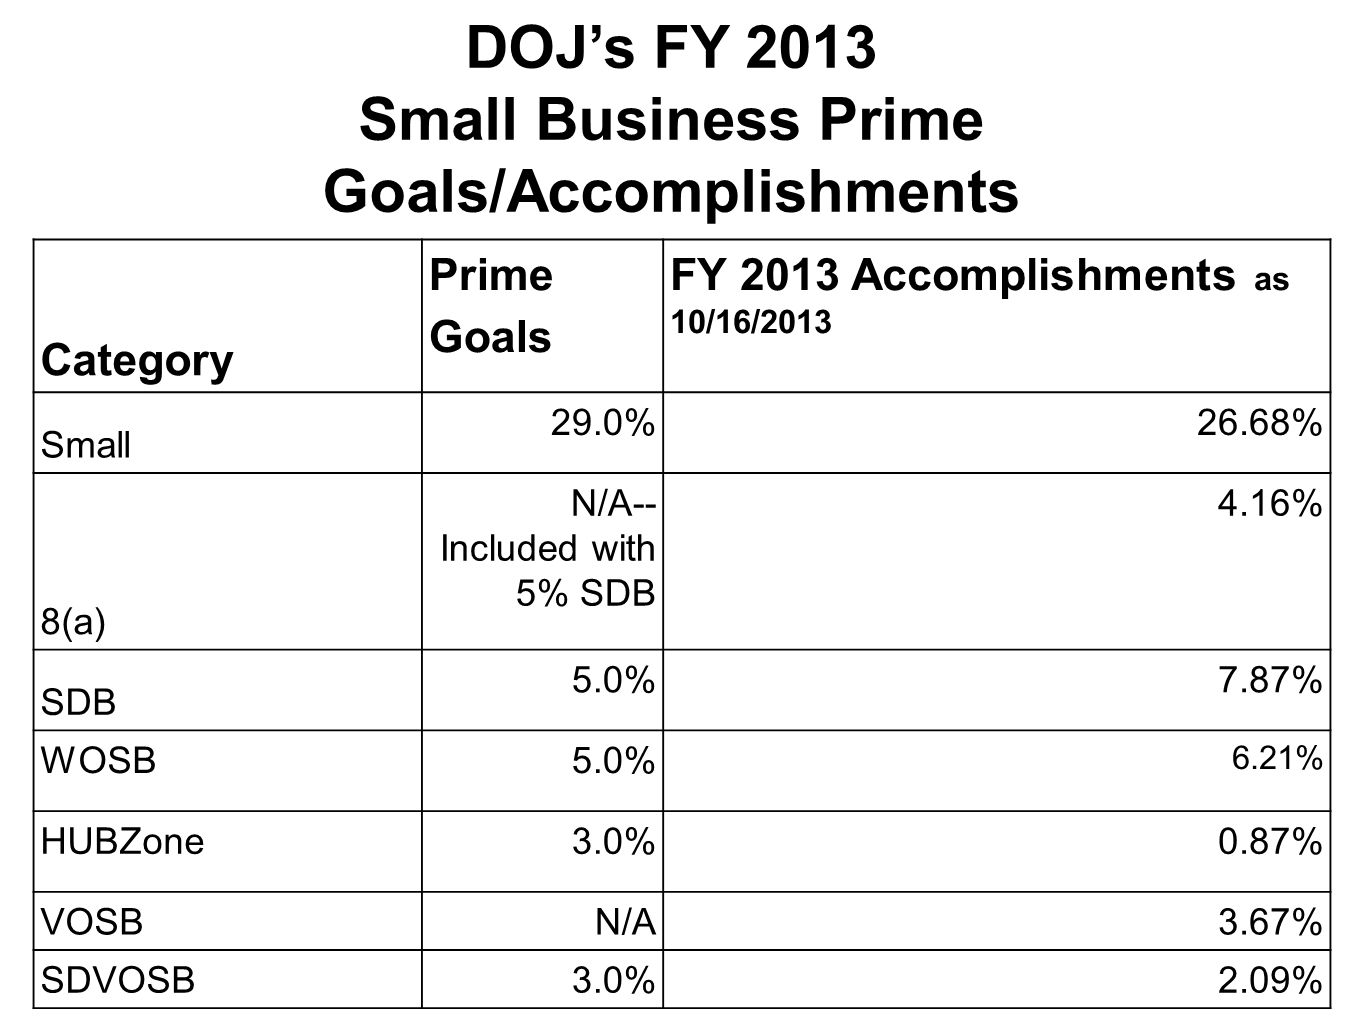 Category Prime Goals FY 2013 Accomplishments as 10/16/2013 Small 29.0%26.68% 8(a) N/A-- Included with 5% SDB 4.16% SDB 5.0%7.87% WOSB 5.0% 6.21% HUBZone 3.0%0.87% VOSBN/A3.67% SDVOSB3.0%2.09% DOJ's FY 2013 Small Business Prime Goals/Accomplishments